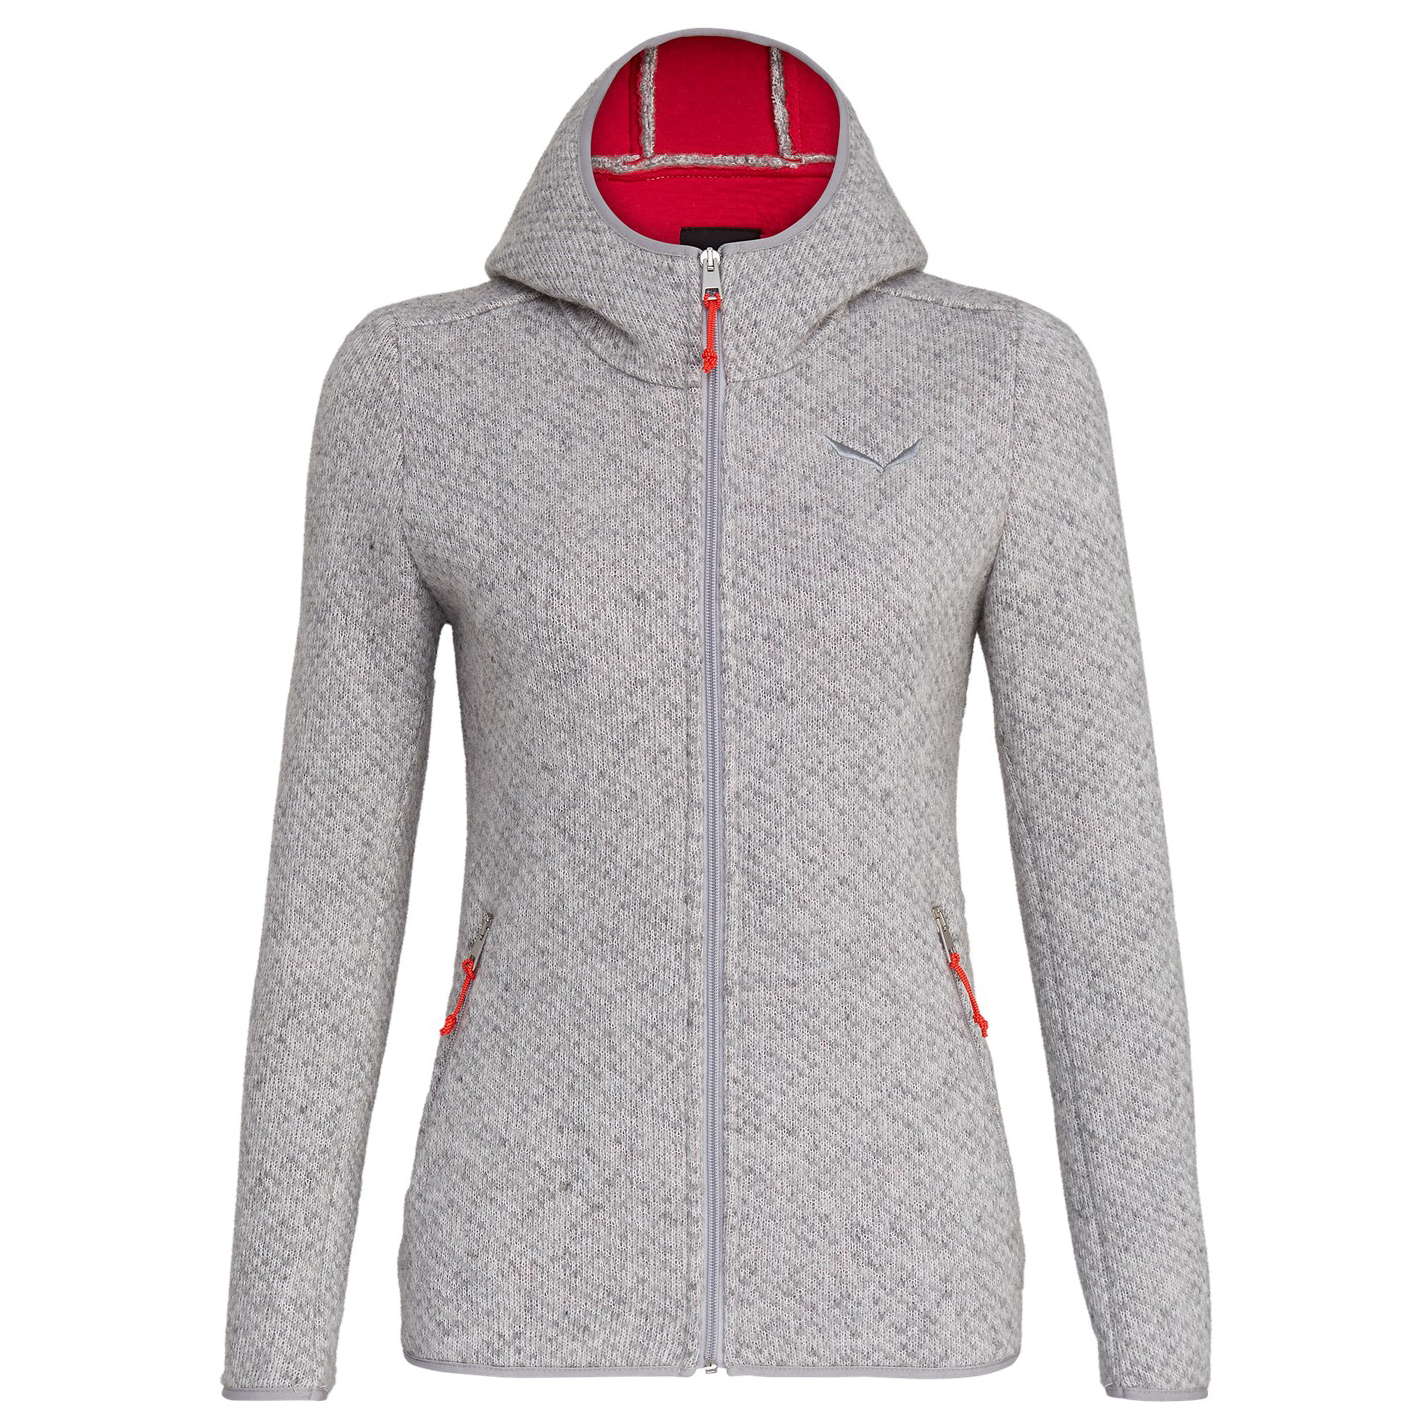 6ec6226b6052 Salewa - Women s Woolen 2L Hoody - Wool jacket